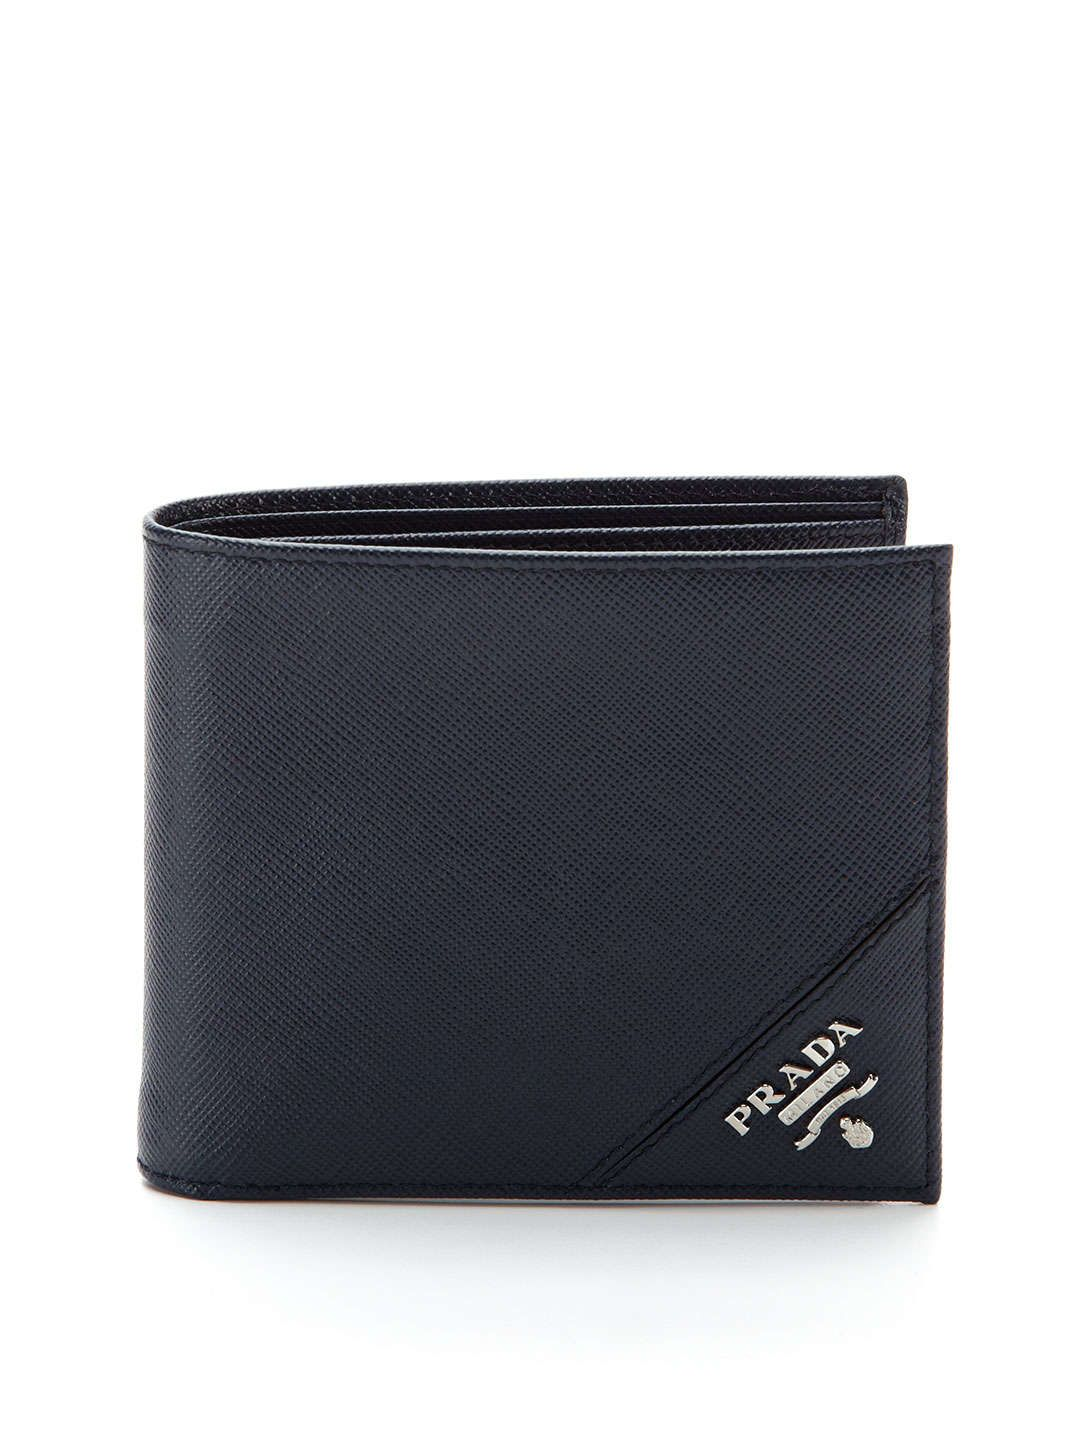 384a82ef41 Saffiano Leather Bifold Wallet | Mens Fashion | Leather bifold ...